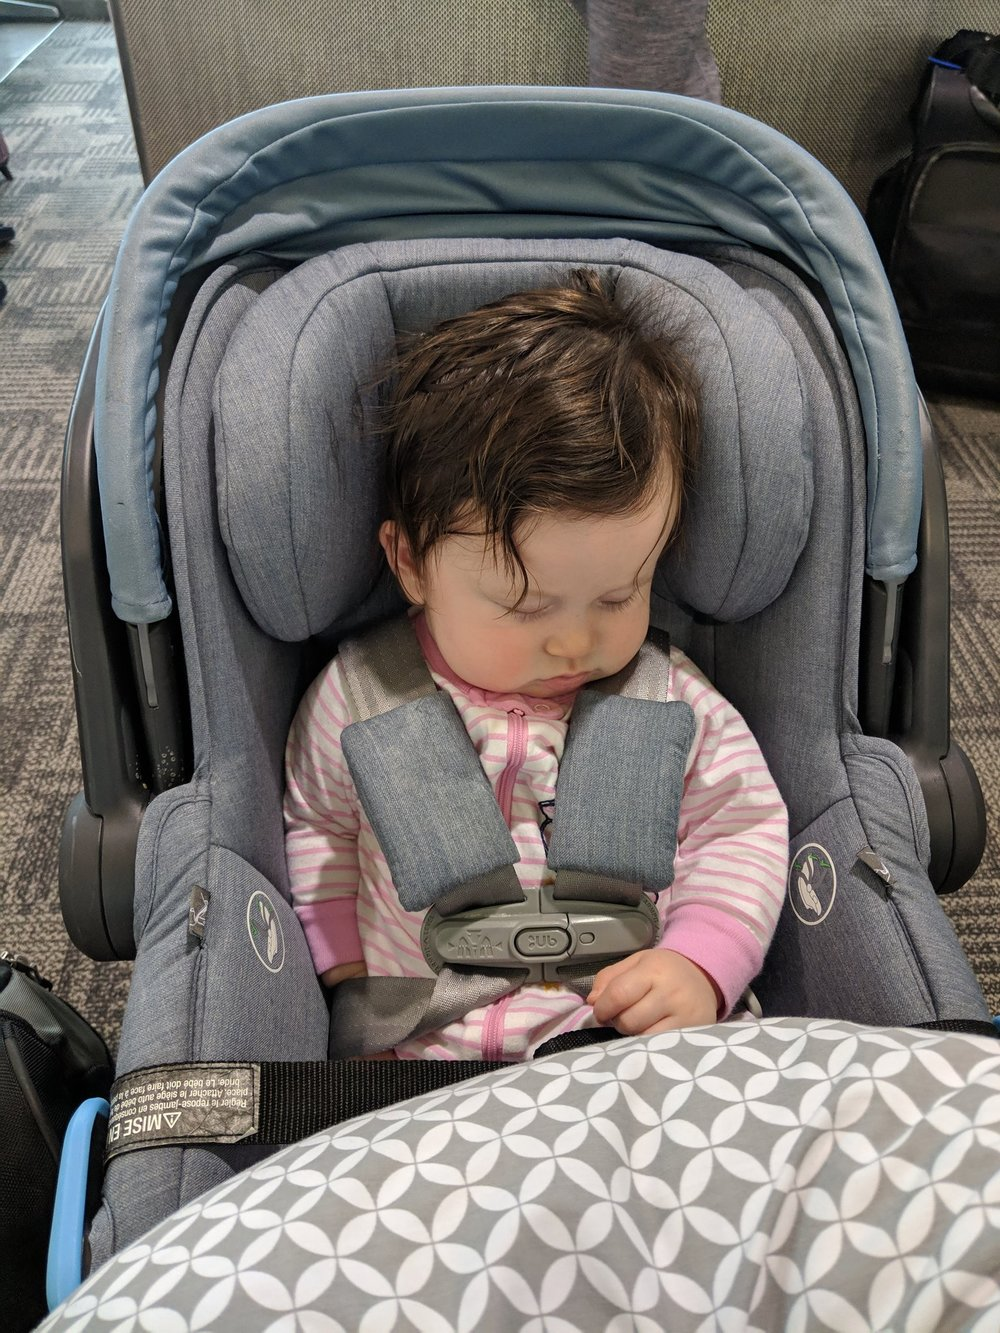 Car seat, stroller, Boppy in the walking-through-the-airport configuration.